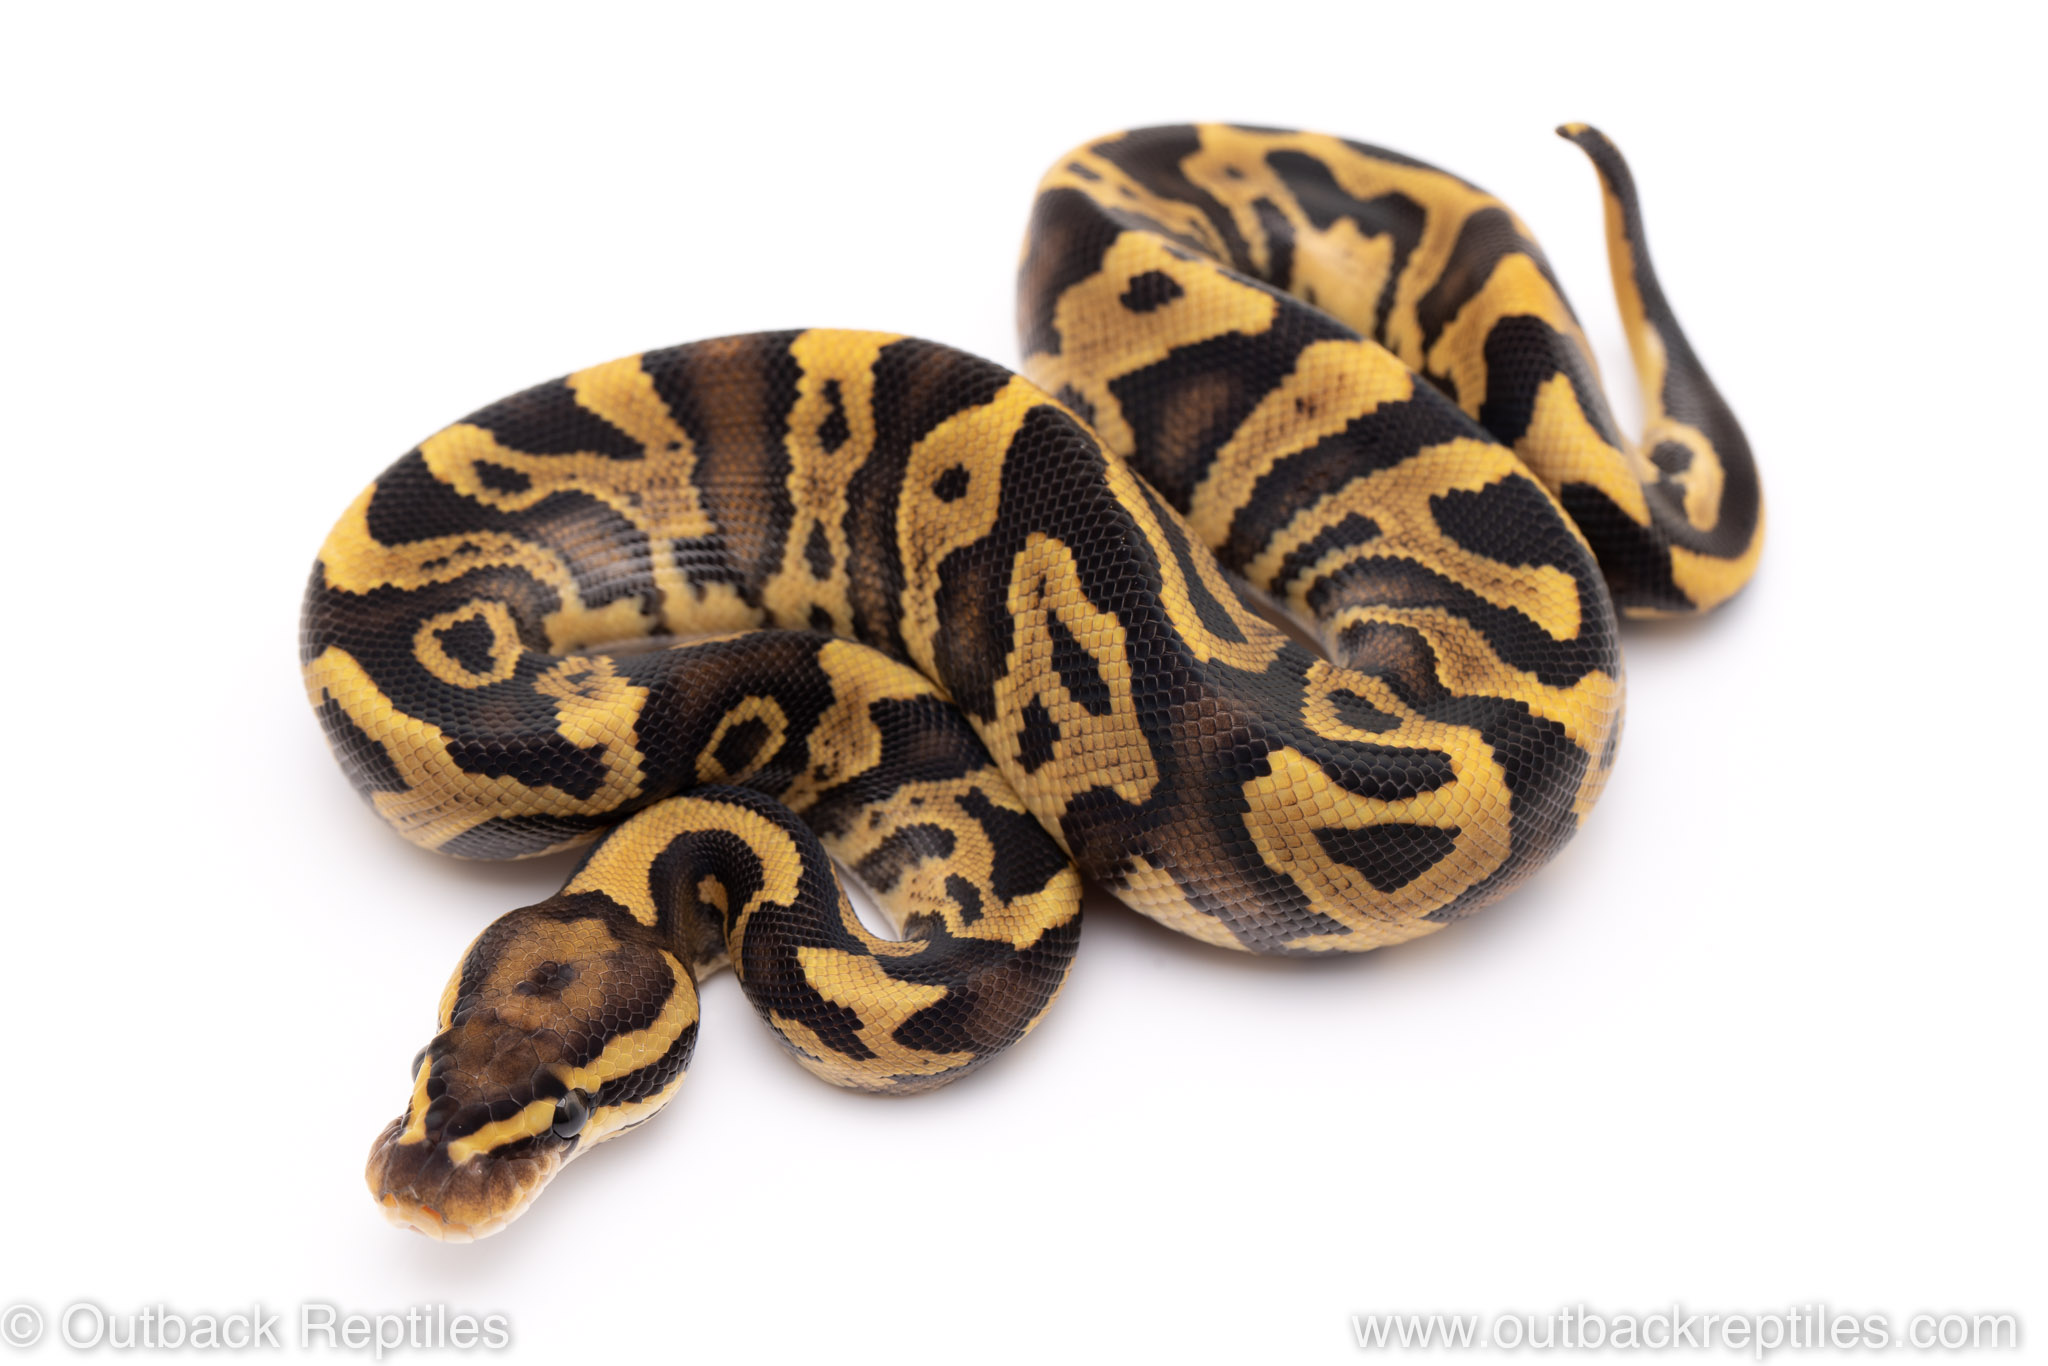 Fire Leopard ball python for sale